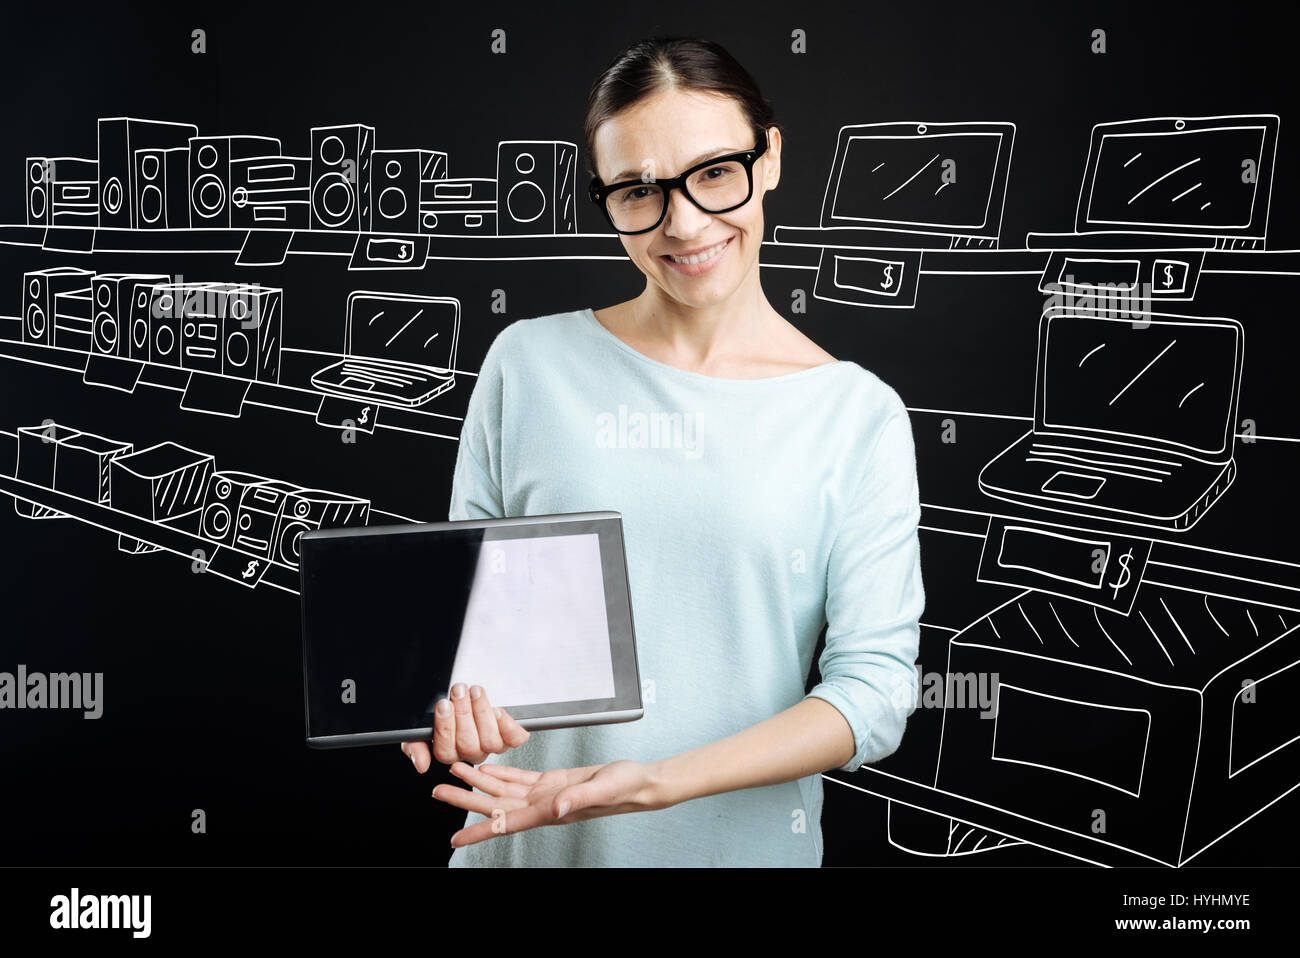 Positive shop assistant selling electronics - Stock Image